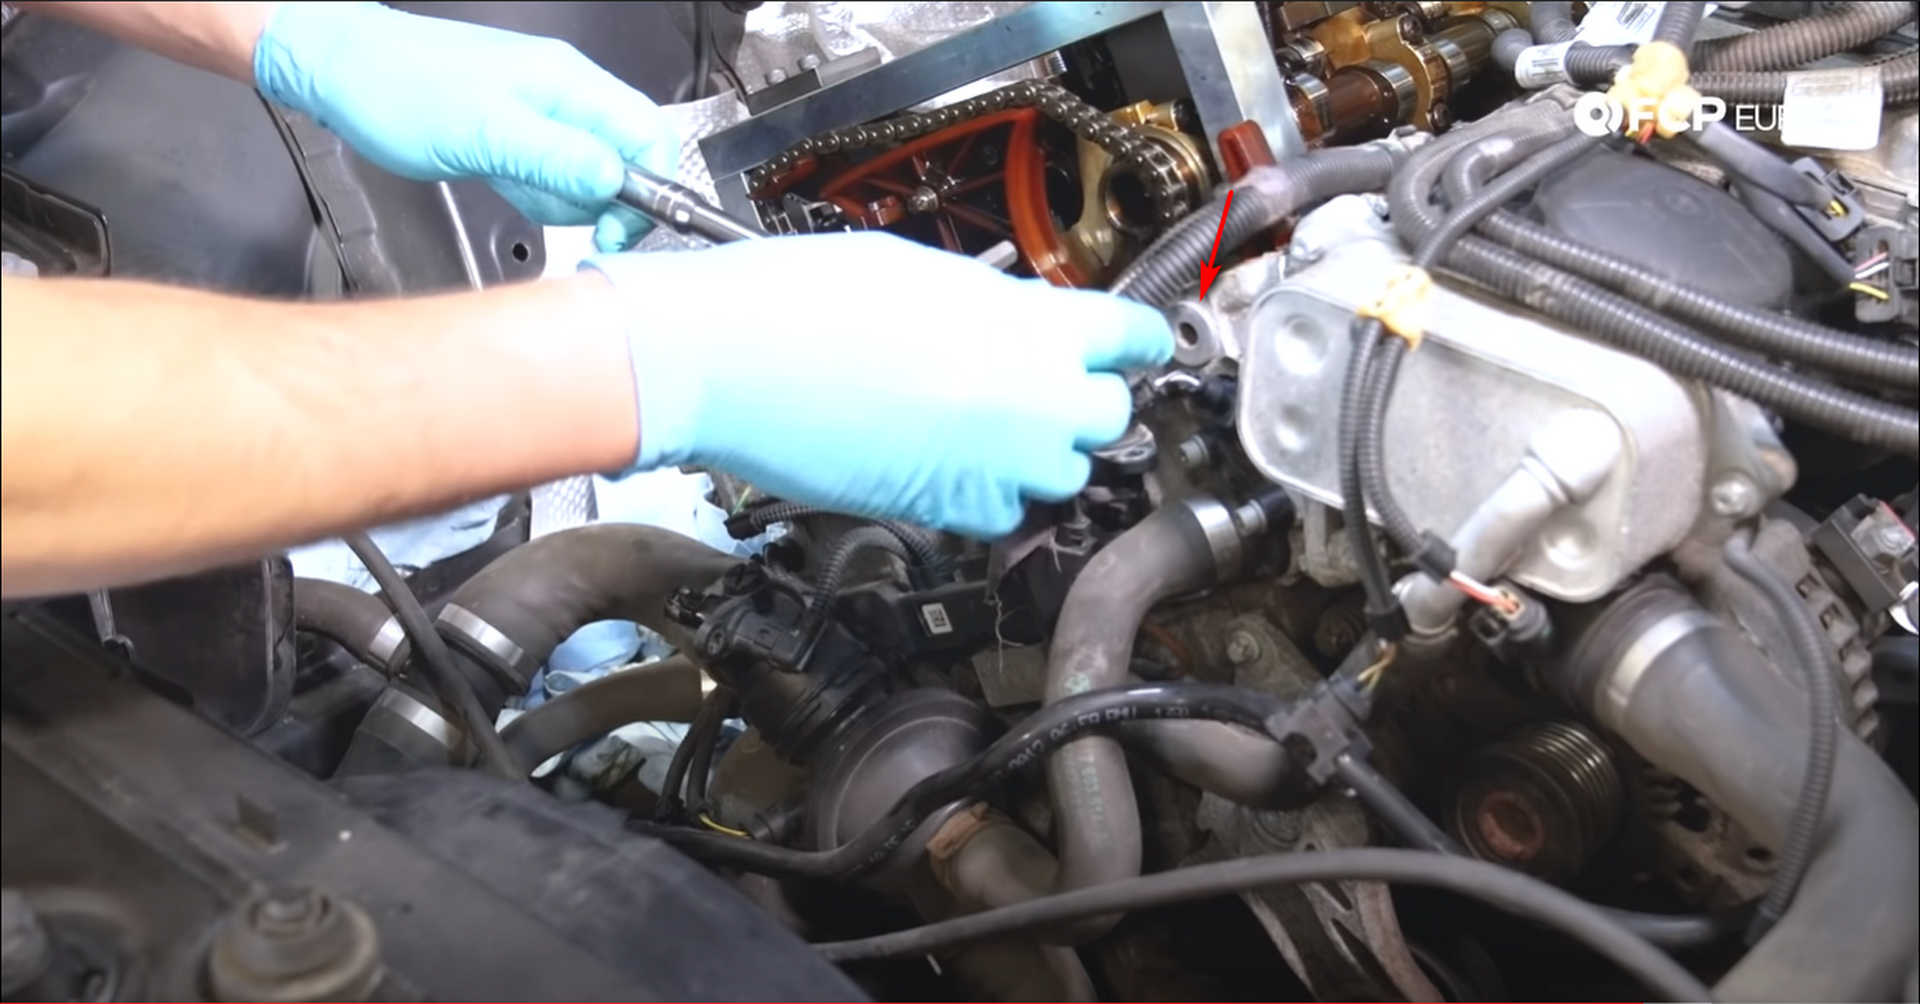 DIY BMW N20 Timing Chain removing the timing chain bolt plugs